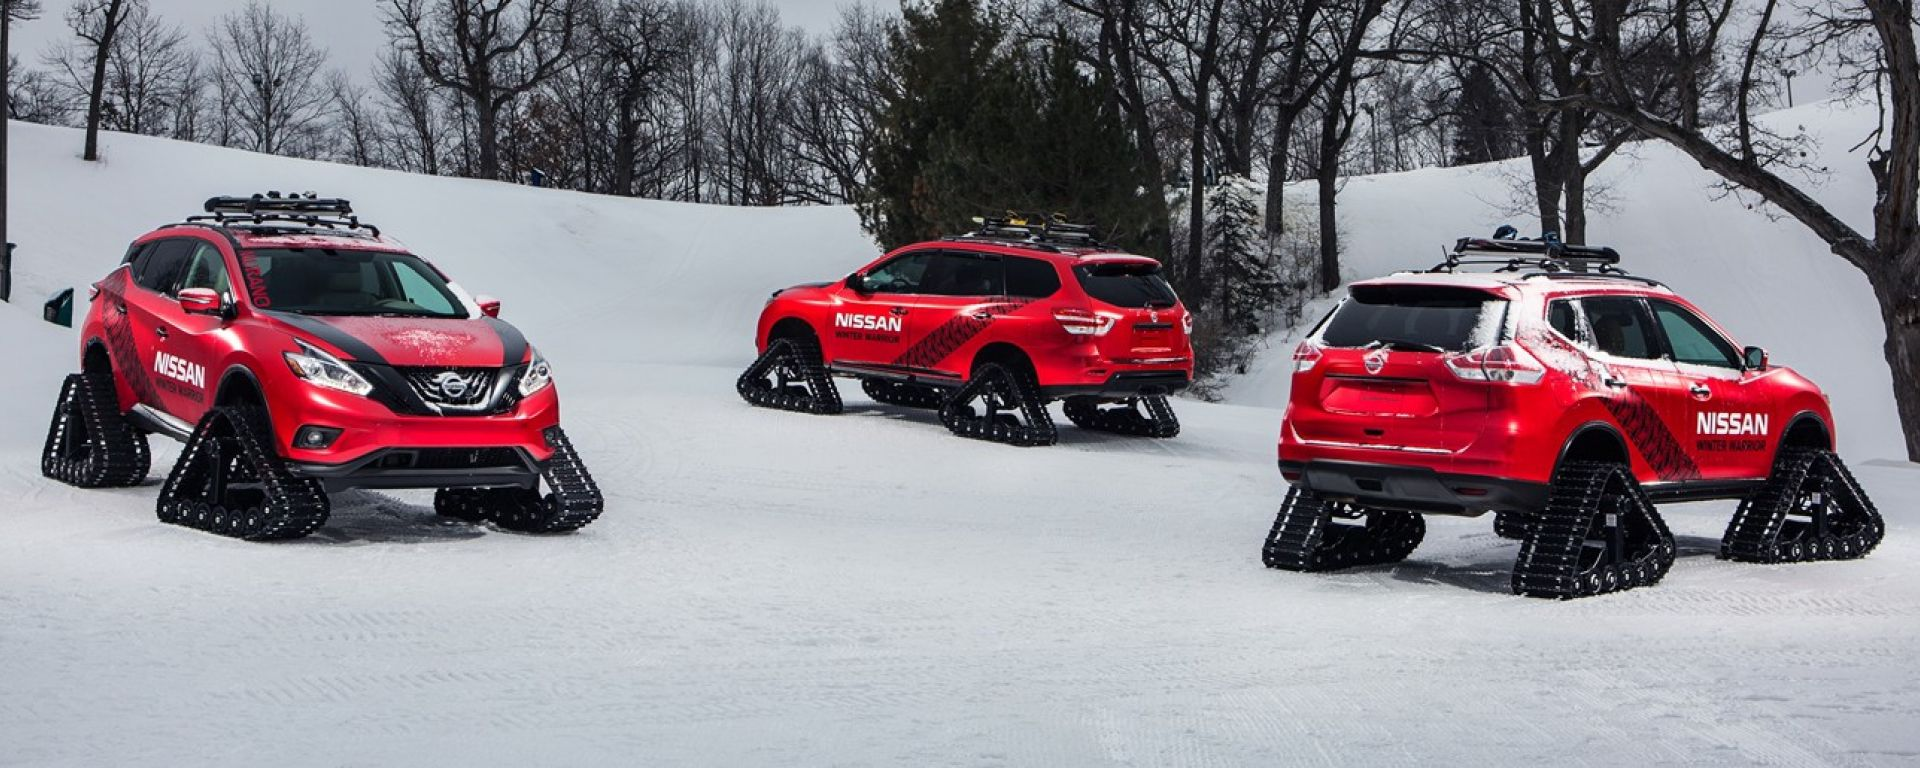 Nissan Winter Warriors